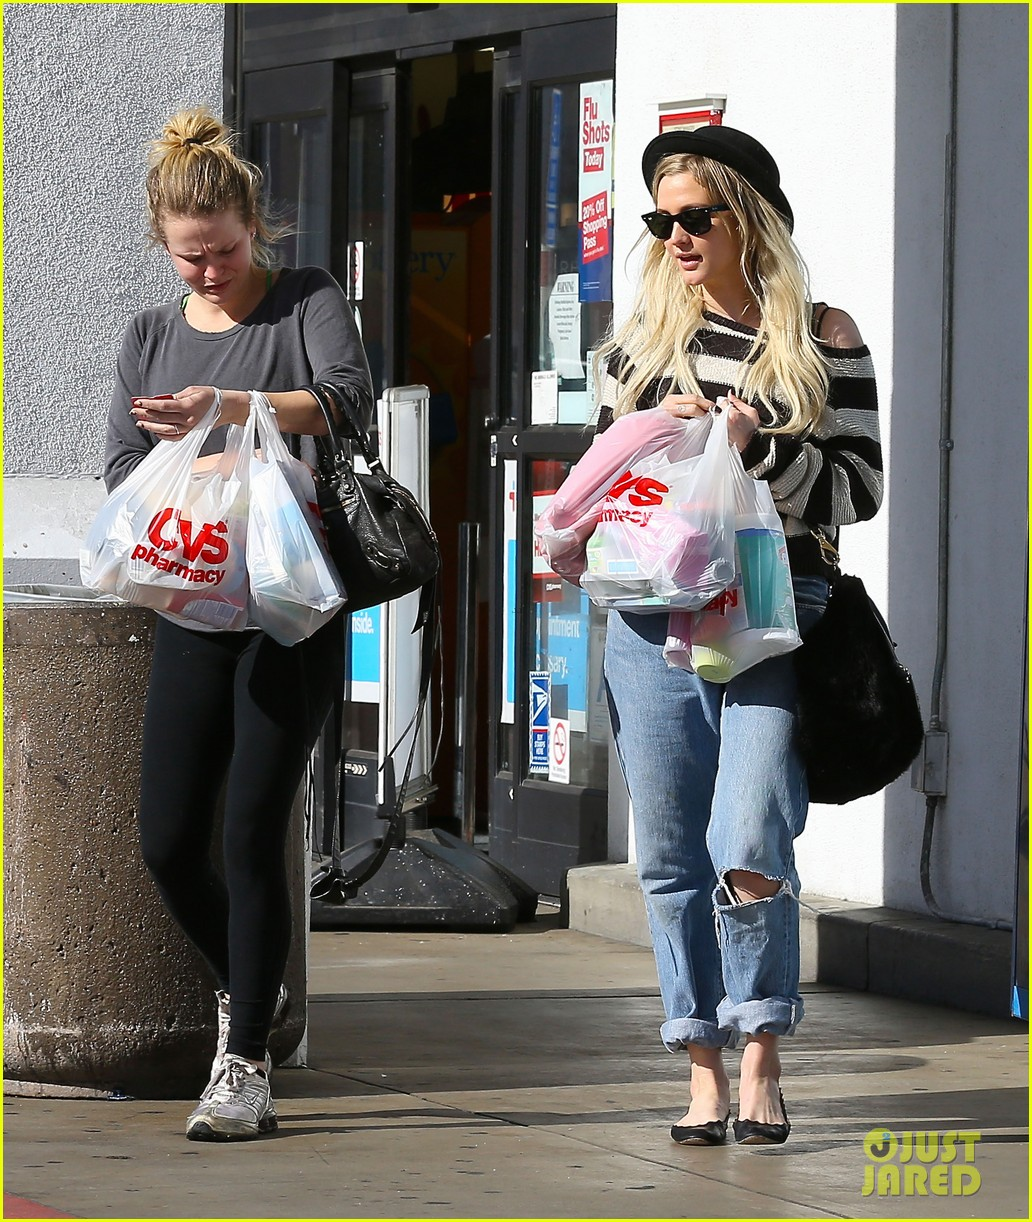 ashlee simpson begins new year with cvs pharmacy stop 103021927